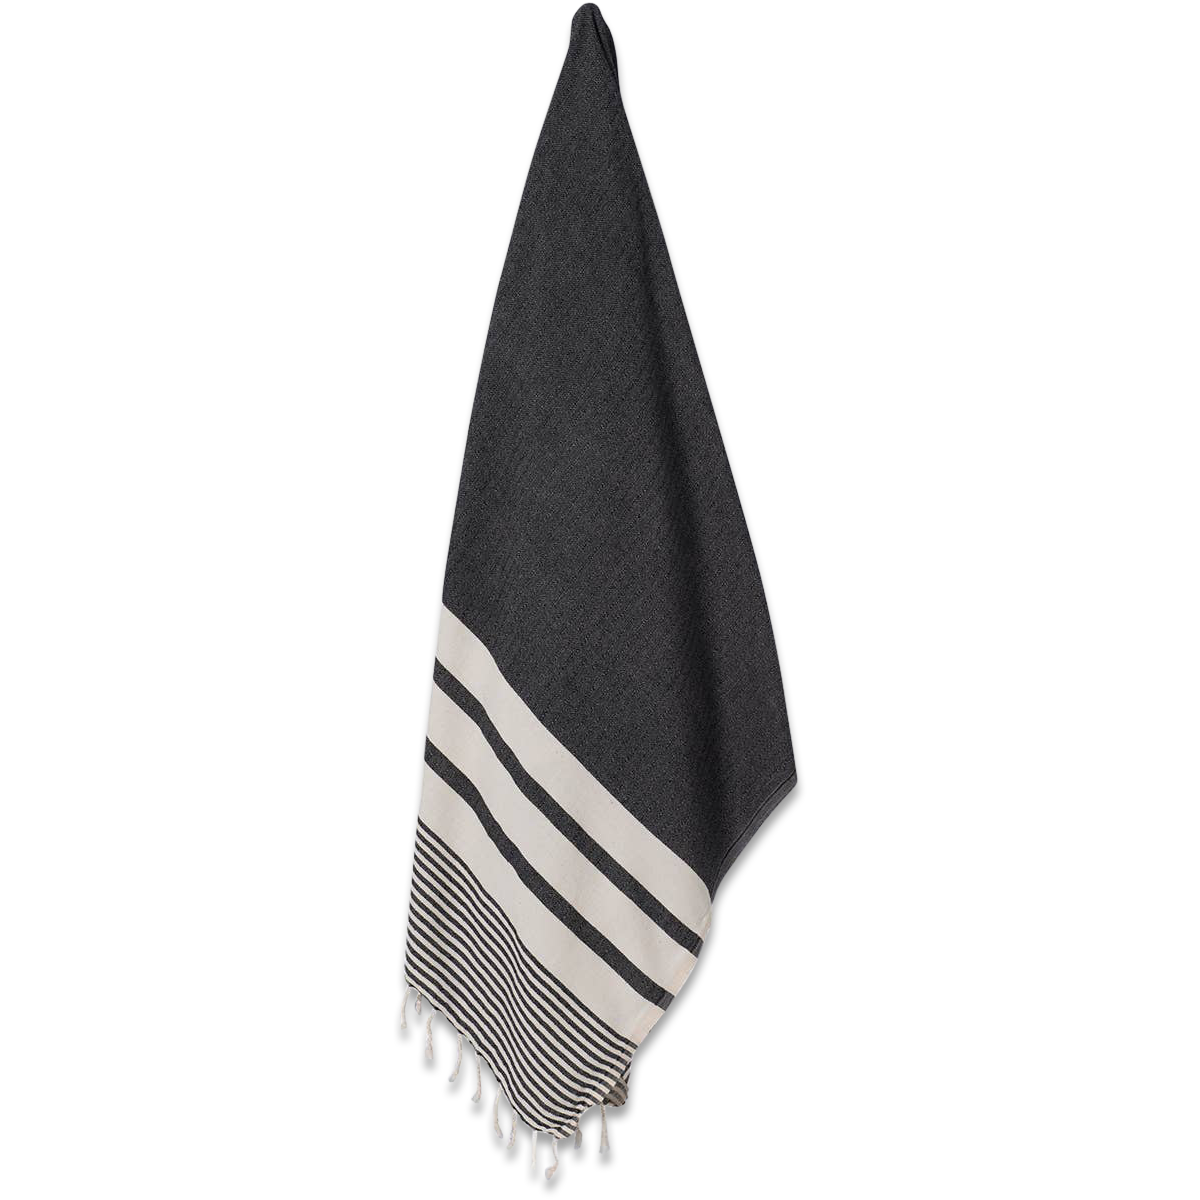 The DKSC Towel